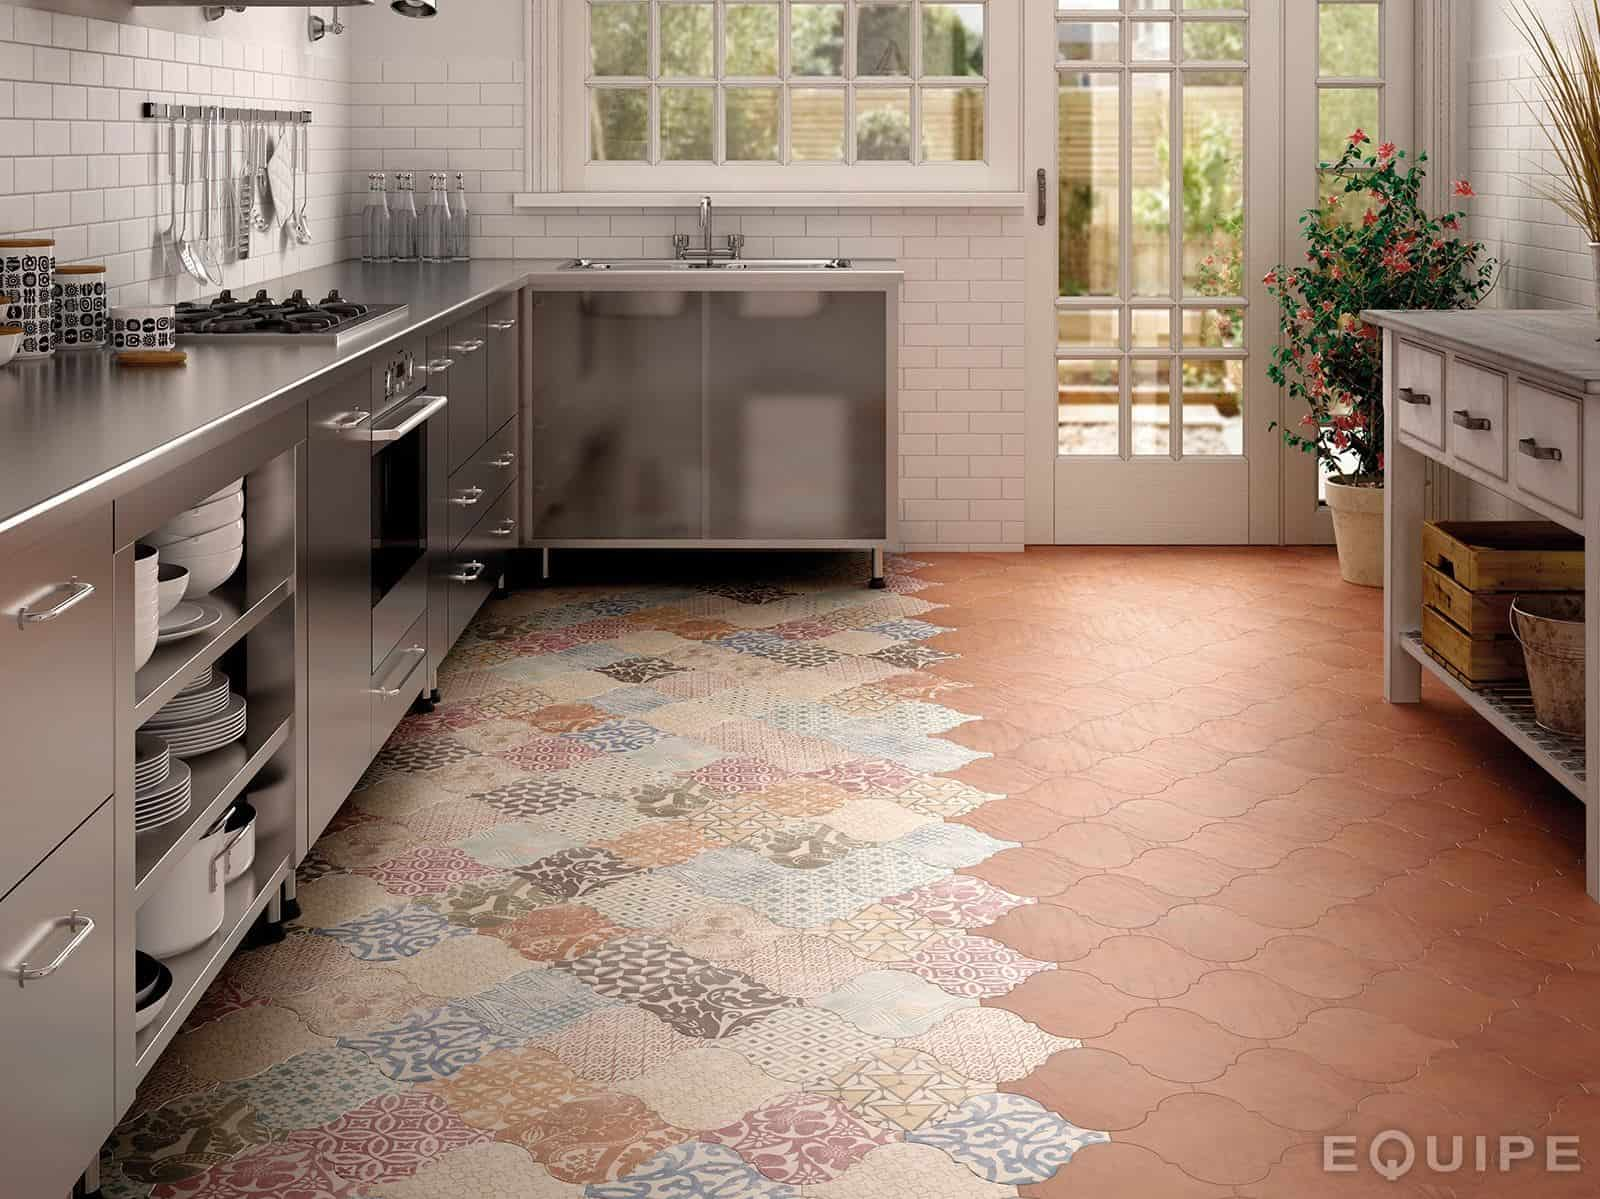 Uncategorized Tiles Design For Kitchen Floor 21 arabesque tile ideas for floor wall and backsplash view in gallery kitchen patchwork equipe 4 jpg